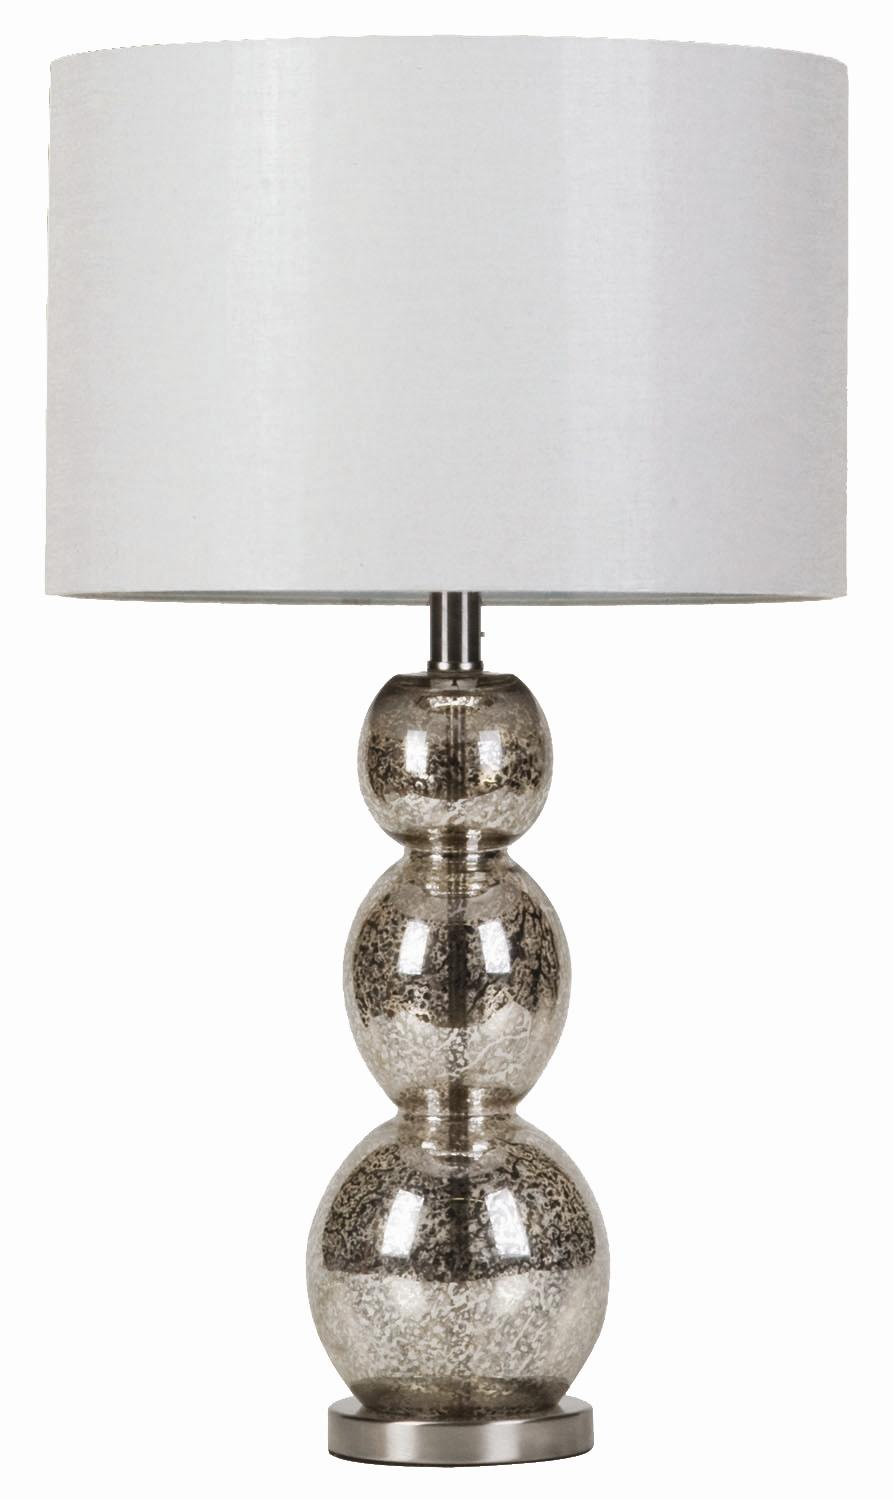 Coaster Table Lamps Table Lamp - Item Number: 901185